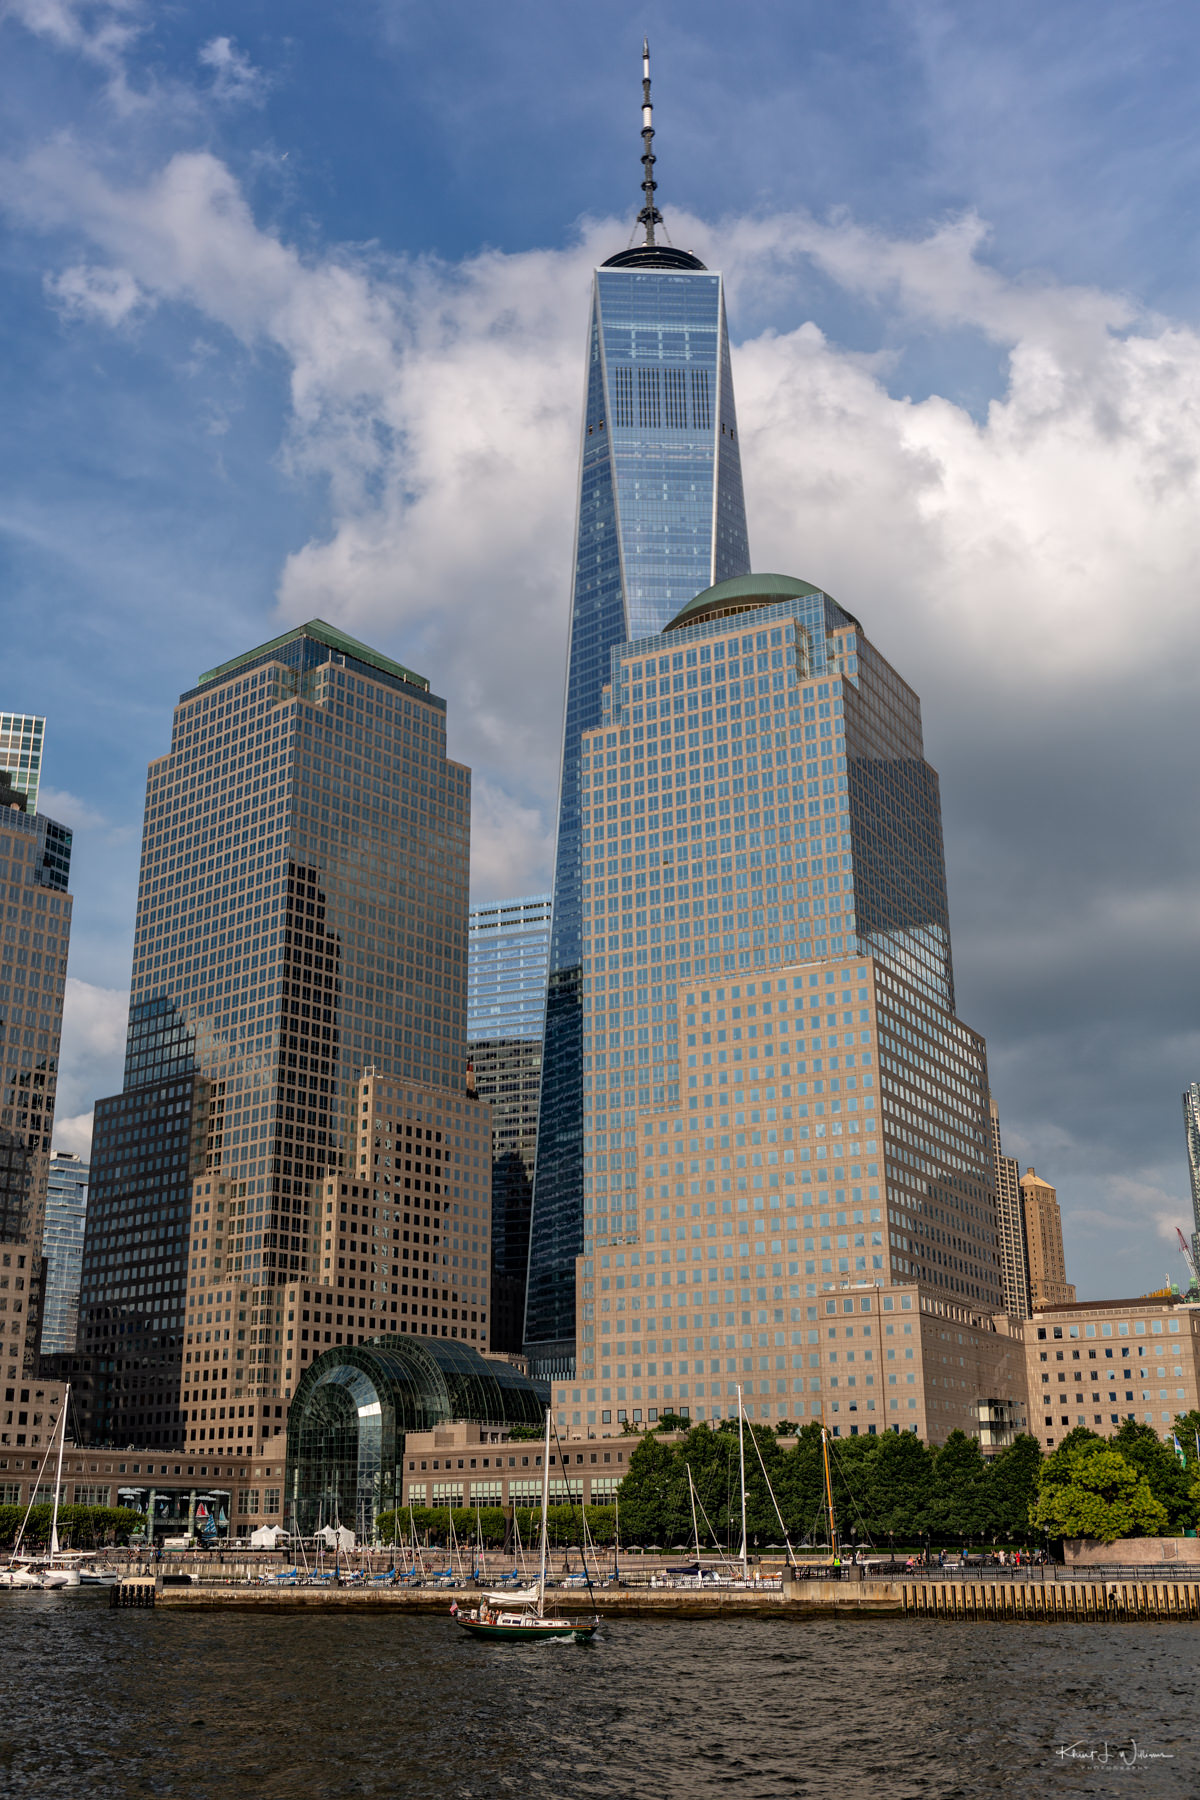 By land and by water; a field trip to the lower Manhattan cityscape The Lower Manhattan Cityscape Canon EOS 5D Mark III 20180728 7149 Edit blog